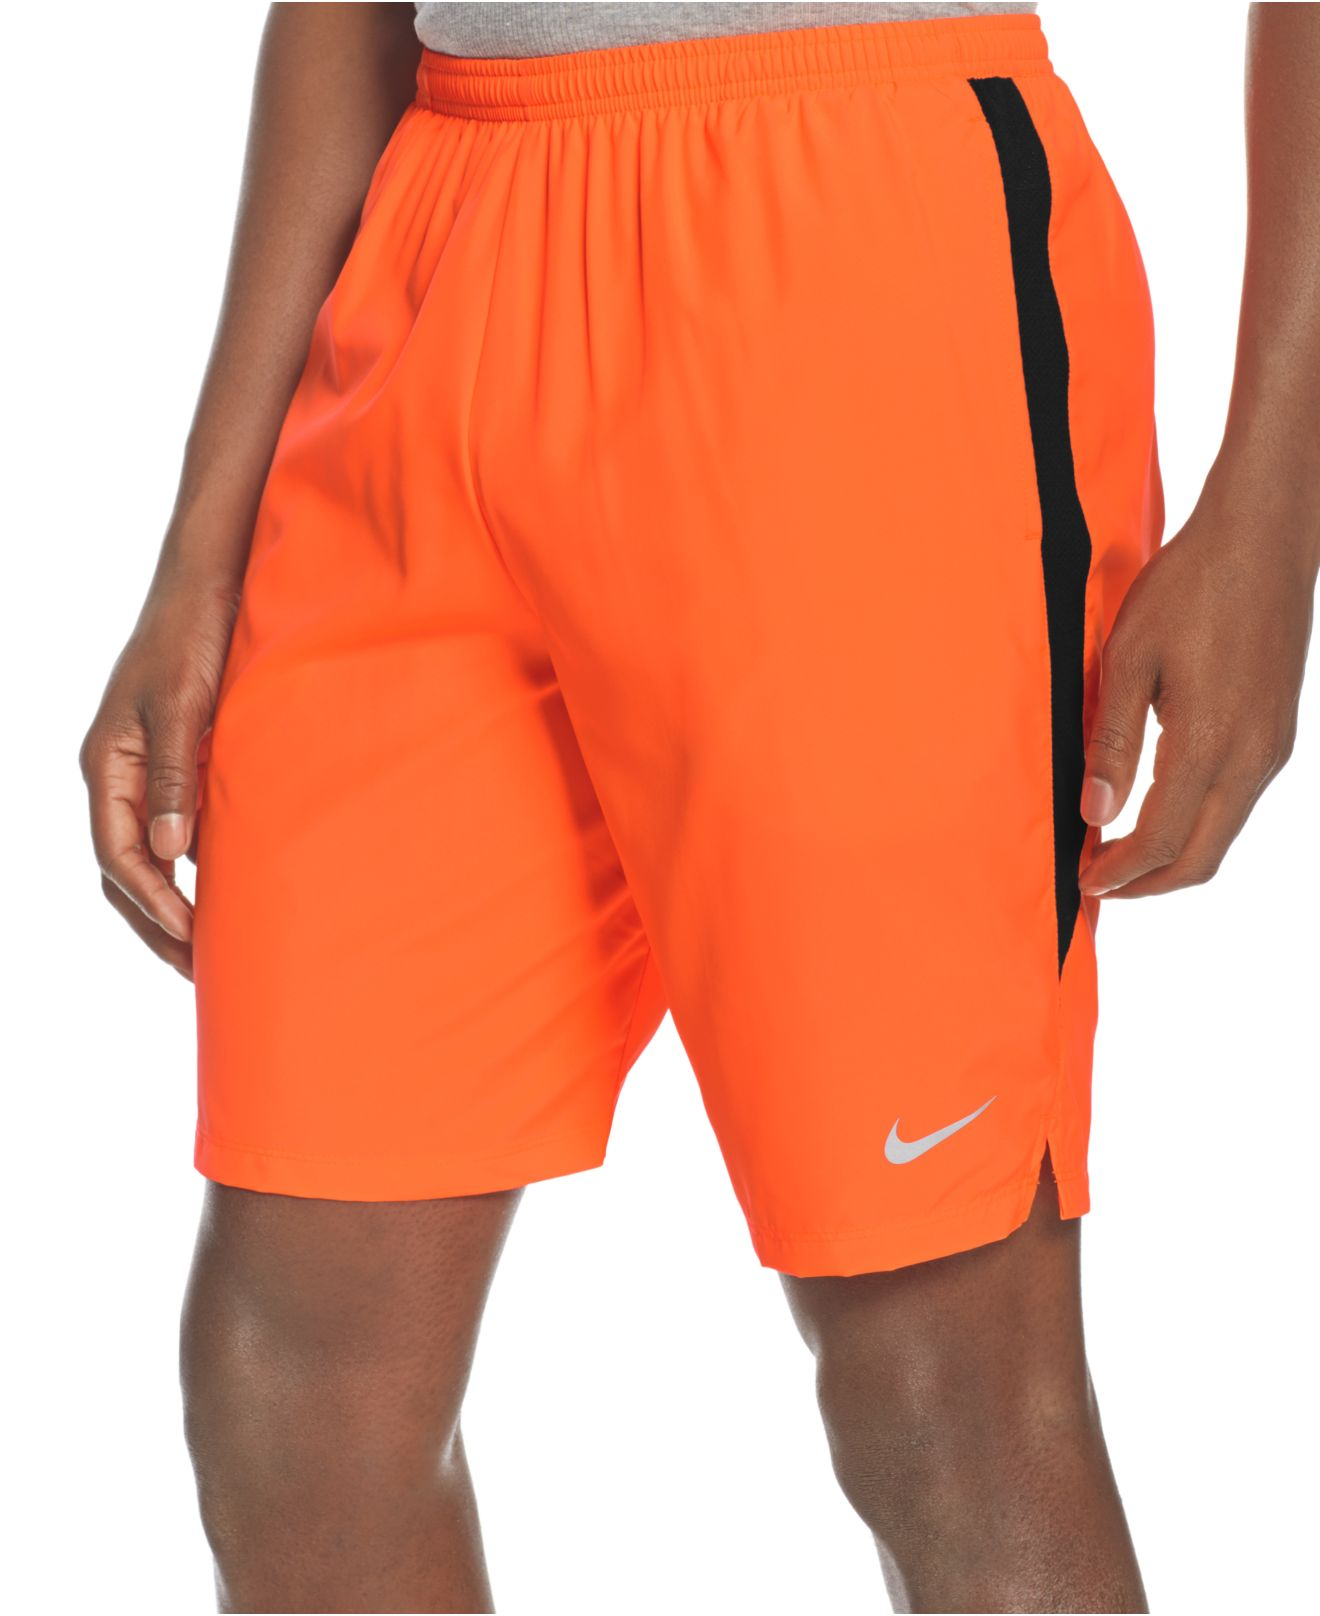 Enjoy free shipping and easy returns every day at Kohl's. Find great deals on Mens Orange Shorts at Kohl's today!